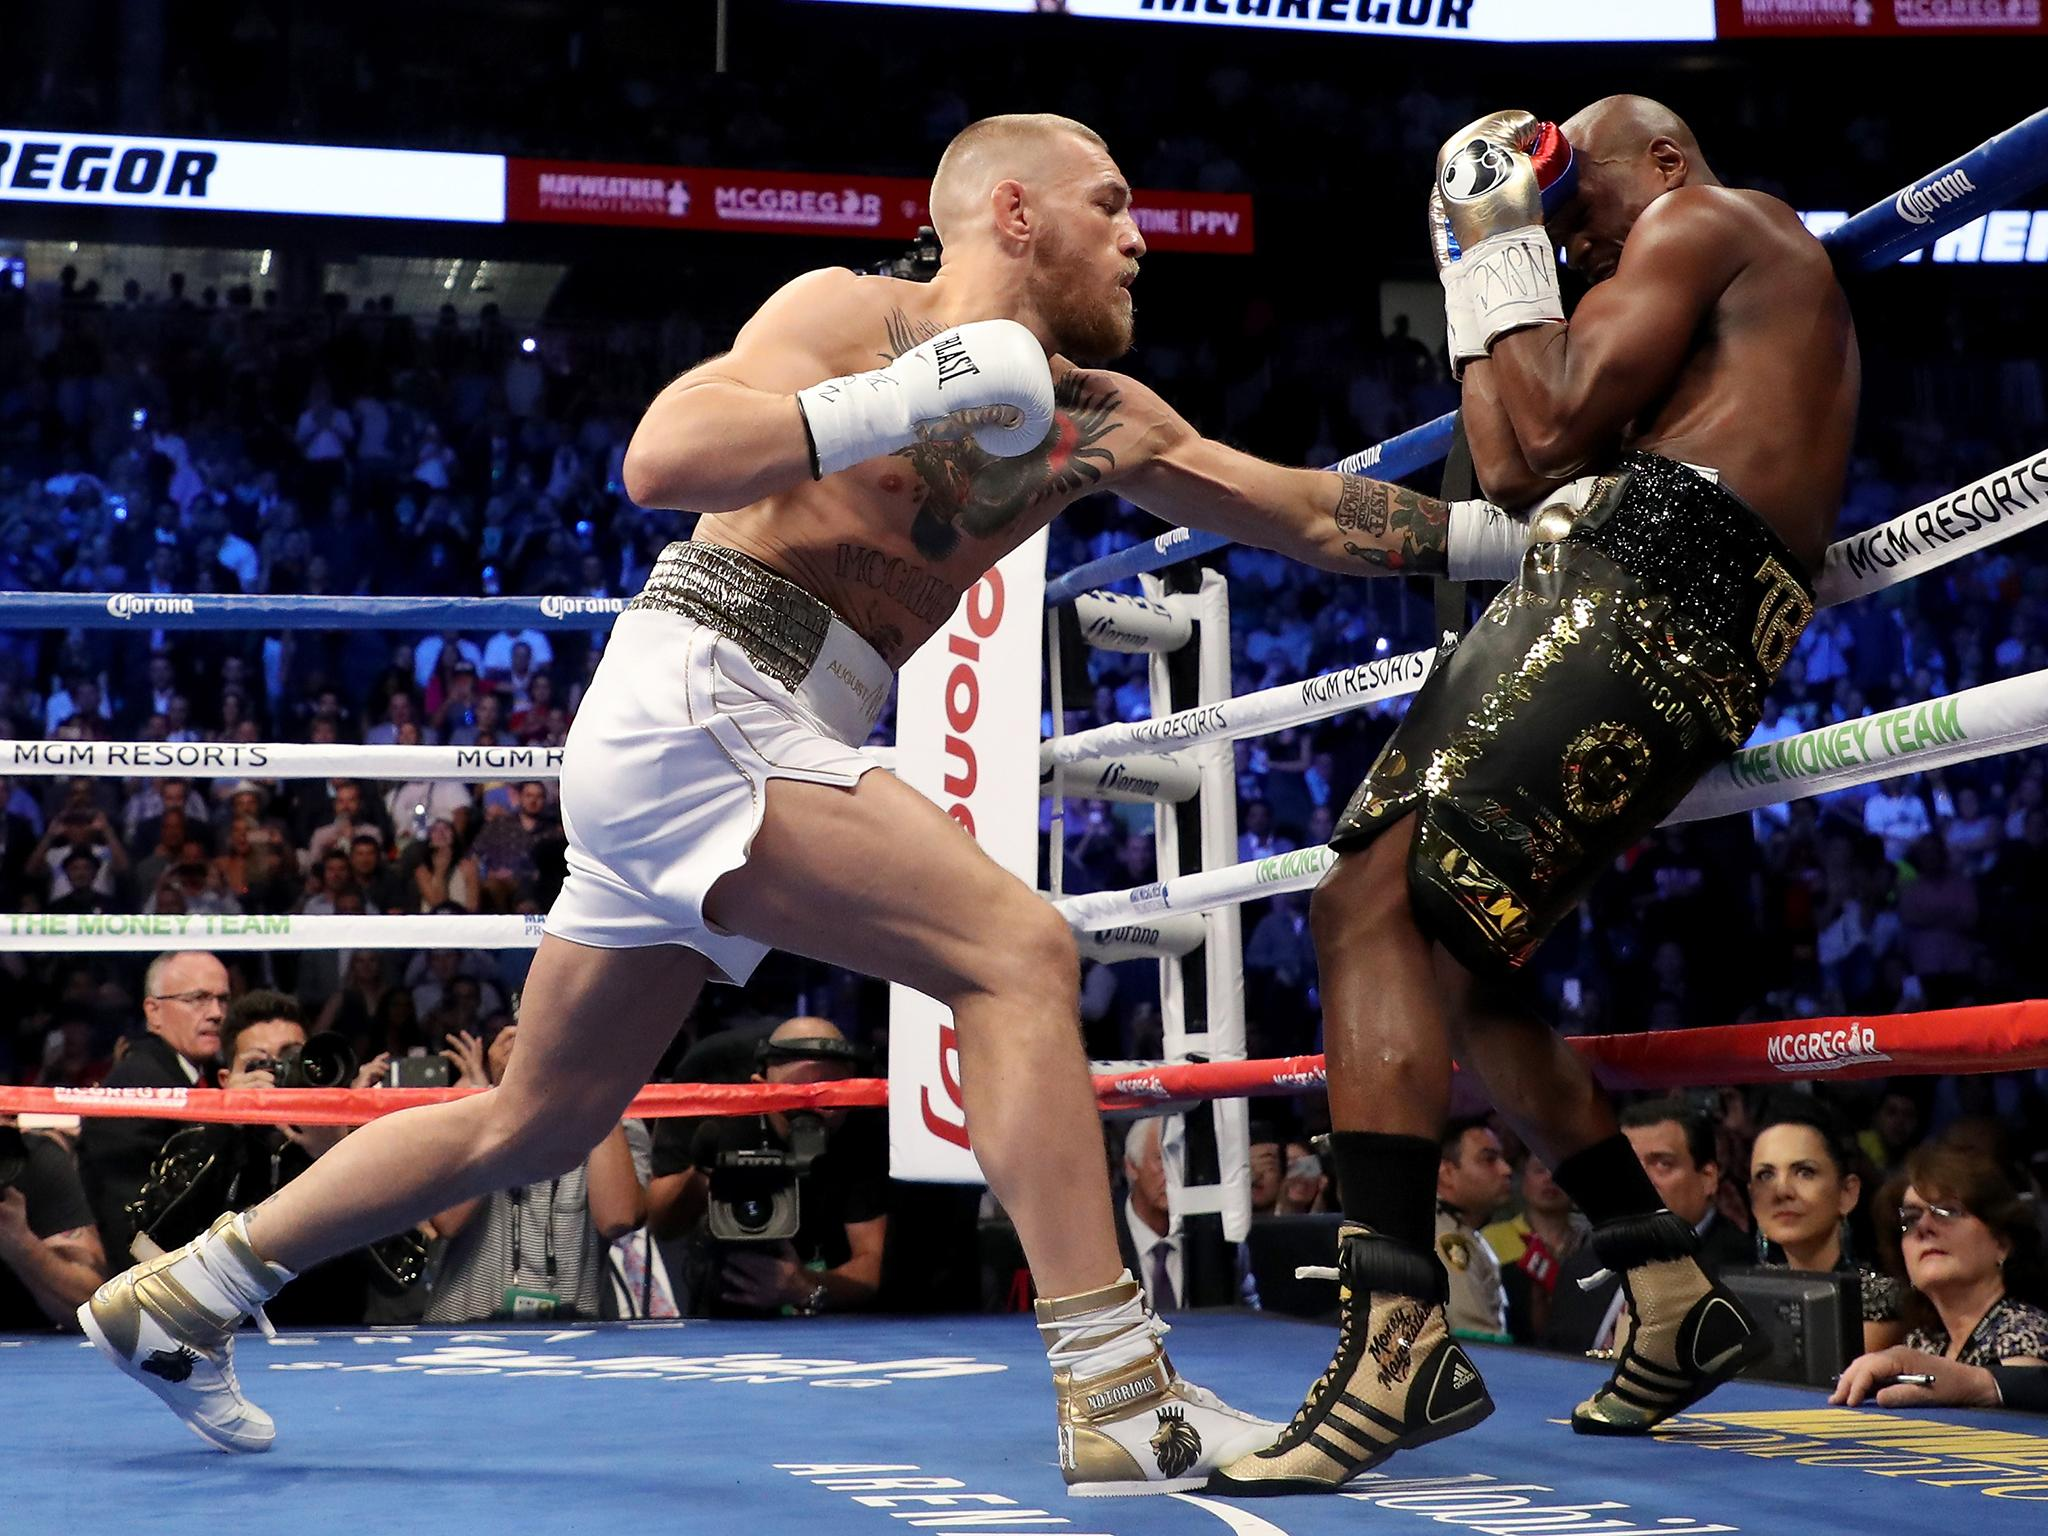 Paddy Power Conor Mcgregor Vs Mayweather